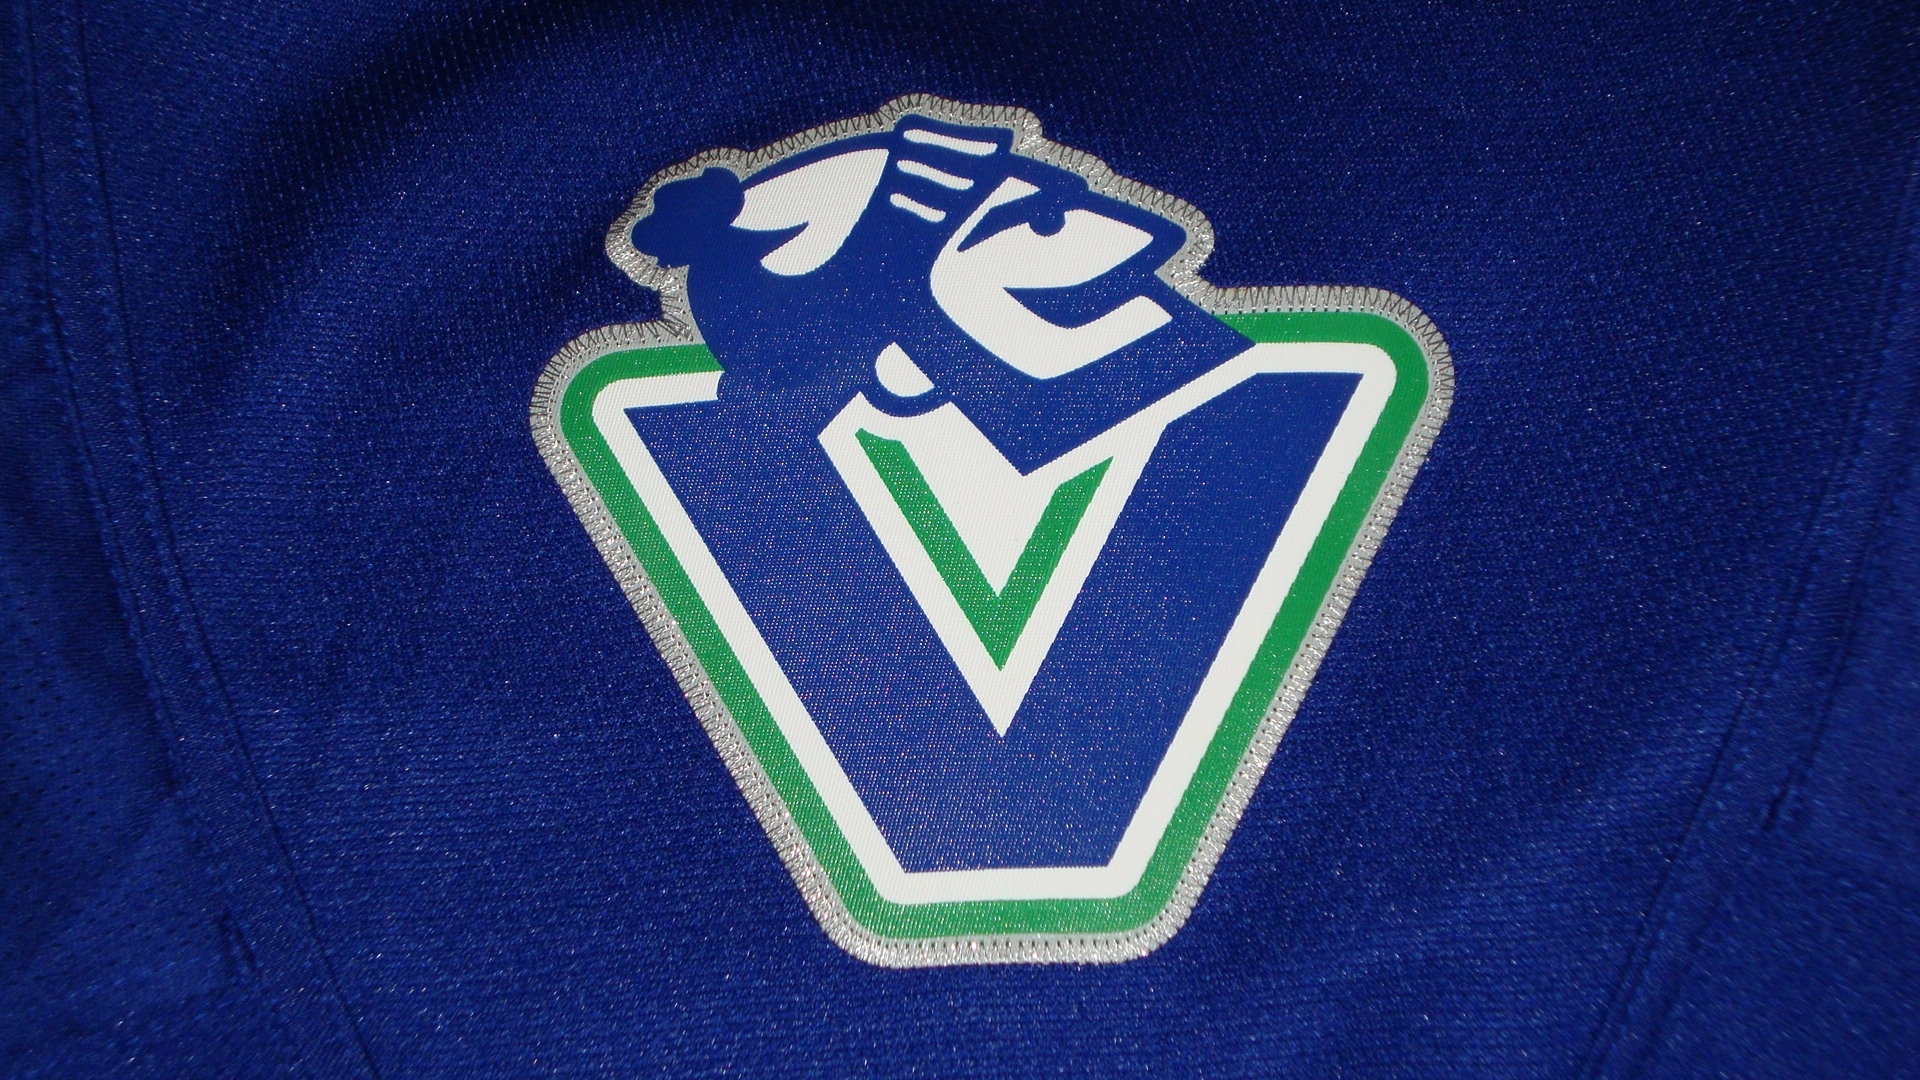 sports hockey vancouver canucks wallpaper background 1920x1080